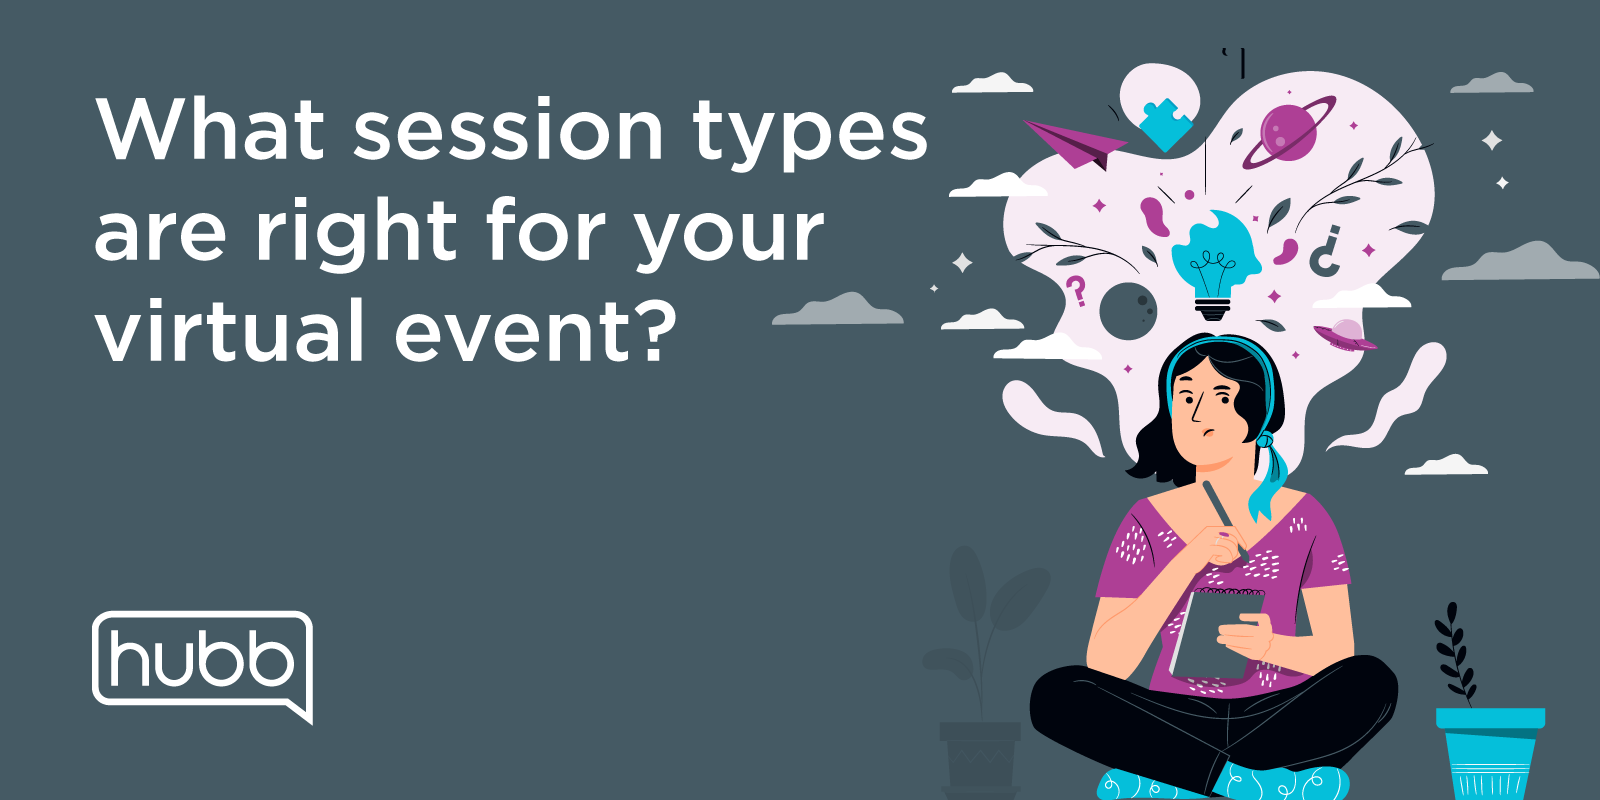 What session types are right for your virtual event?